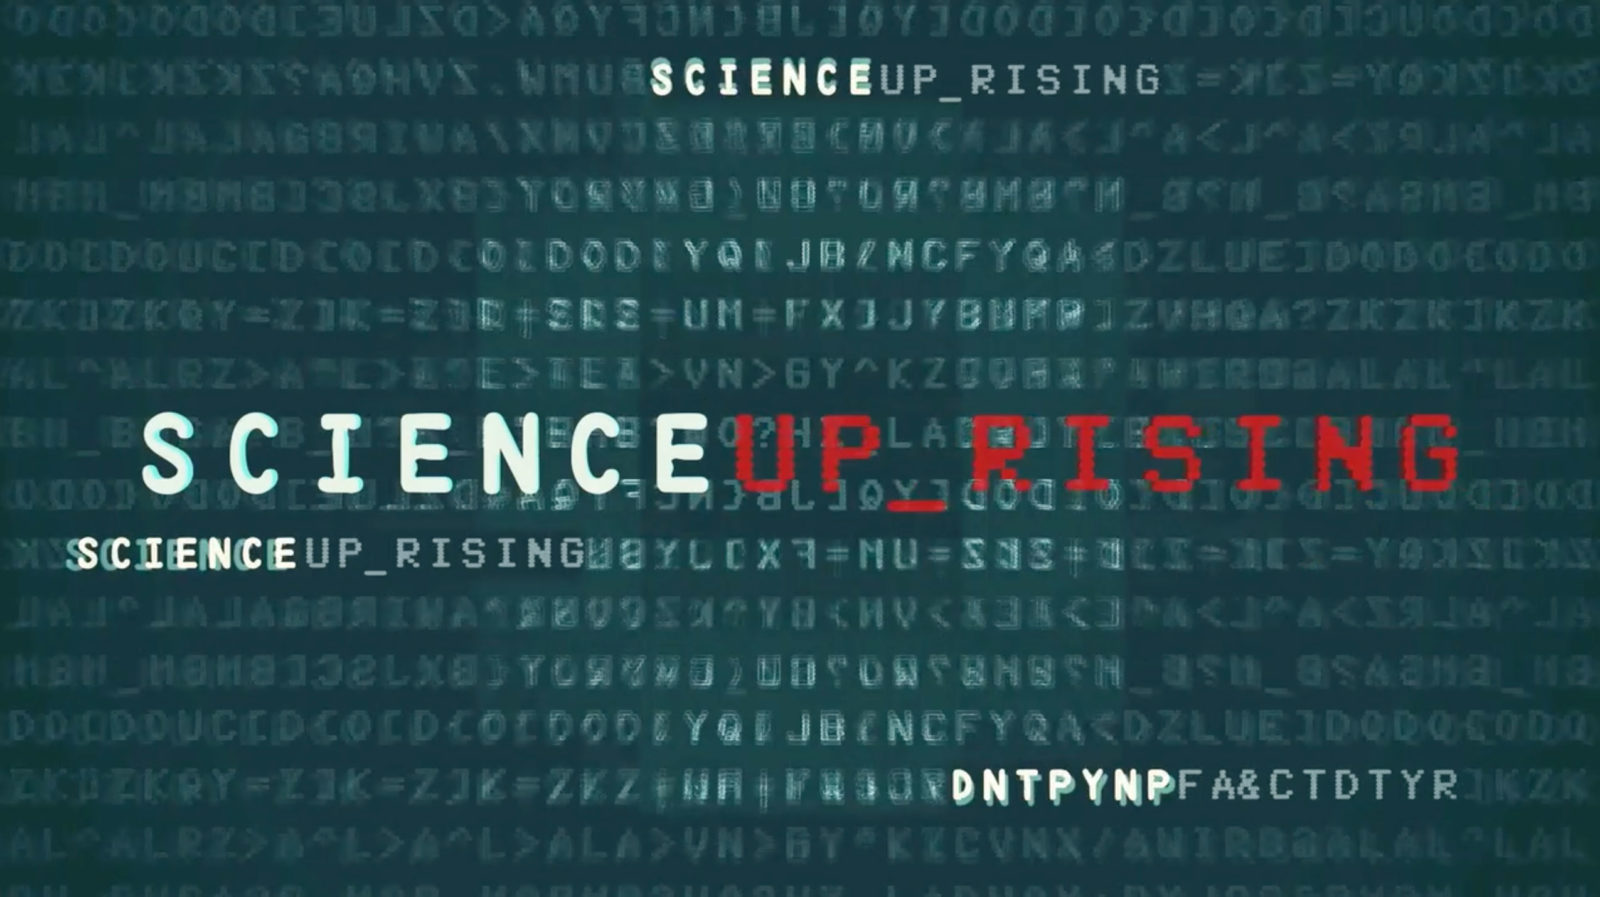 Science Uprising Title Card